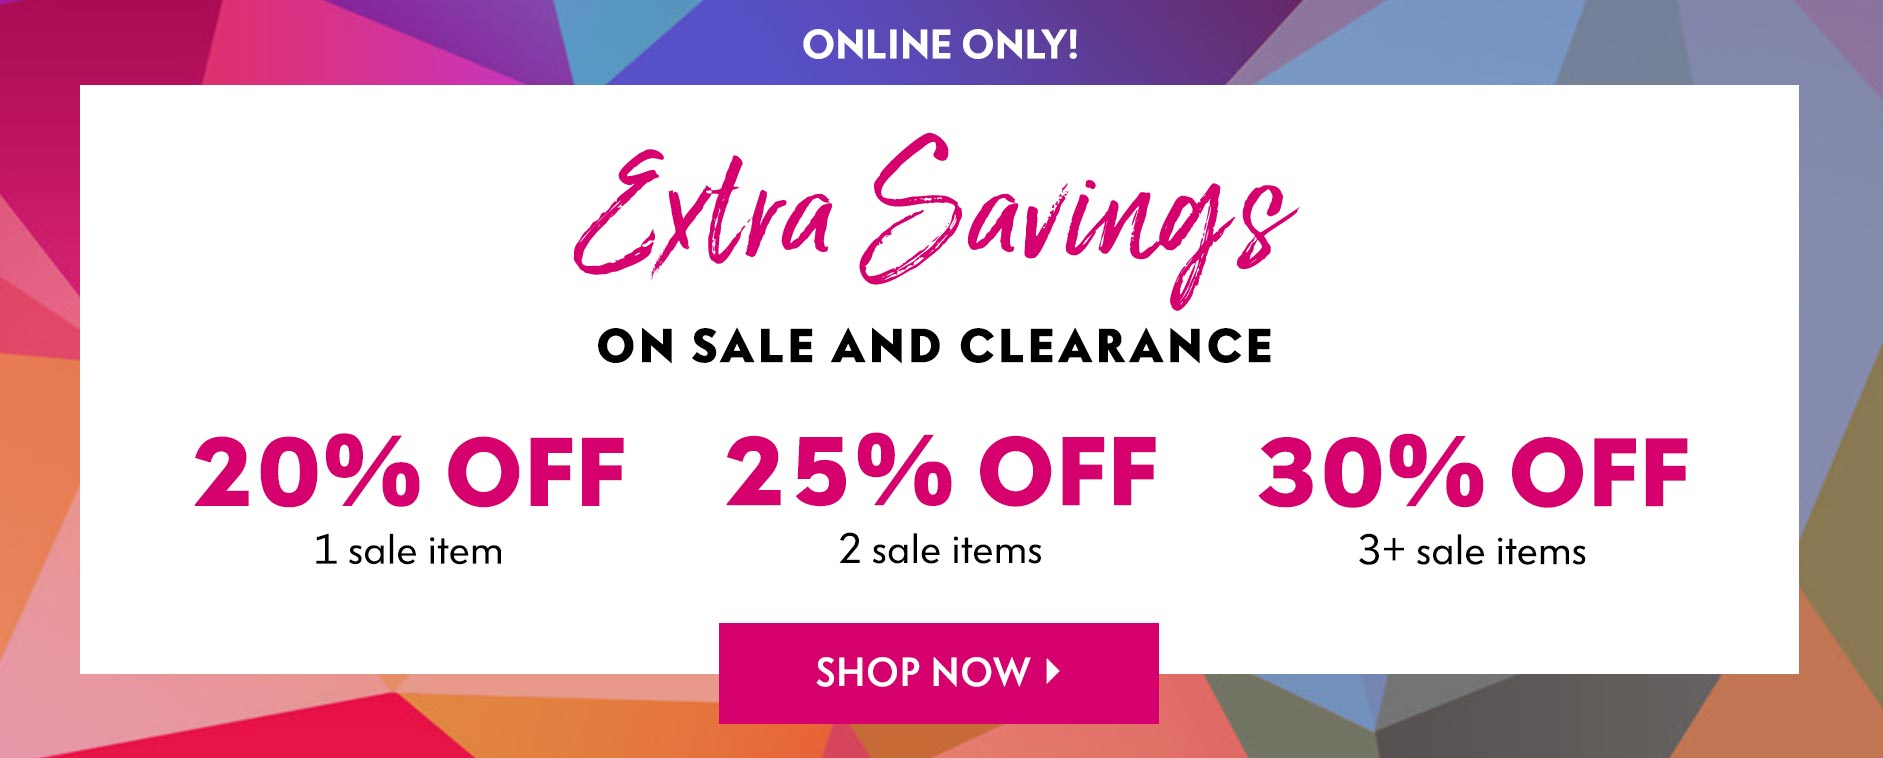 Online Only! Extra Savings On Sale And Clearance - 20% off 1 sale item | 25% off 2 sale items | 30% off 3+ sale items